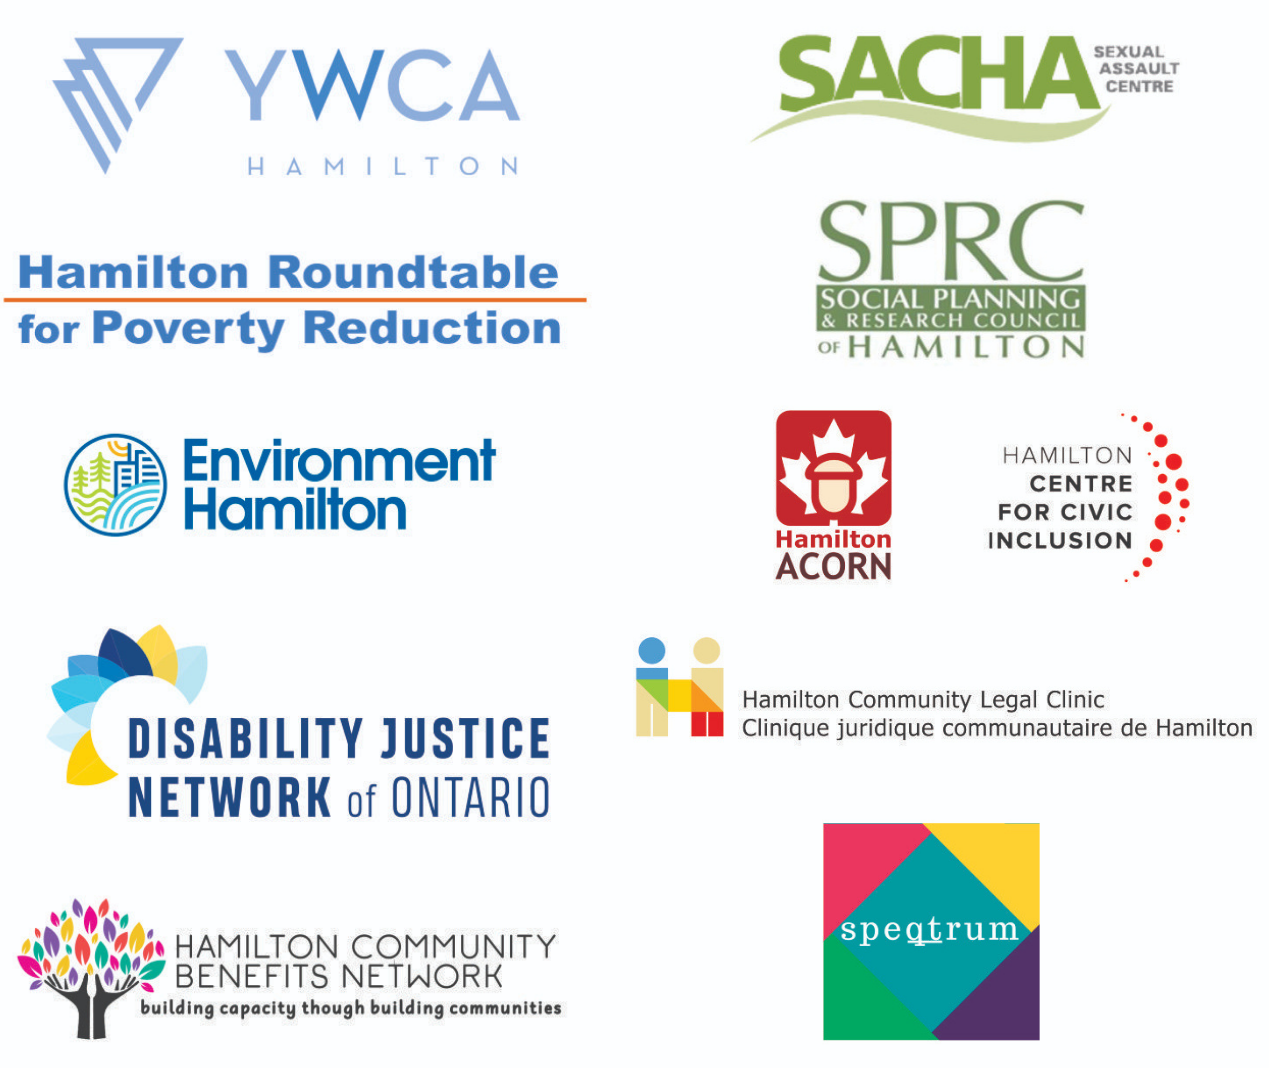 The logos of the Just Recovery Hamilton coalition members